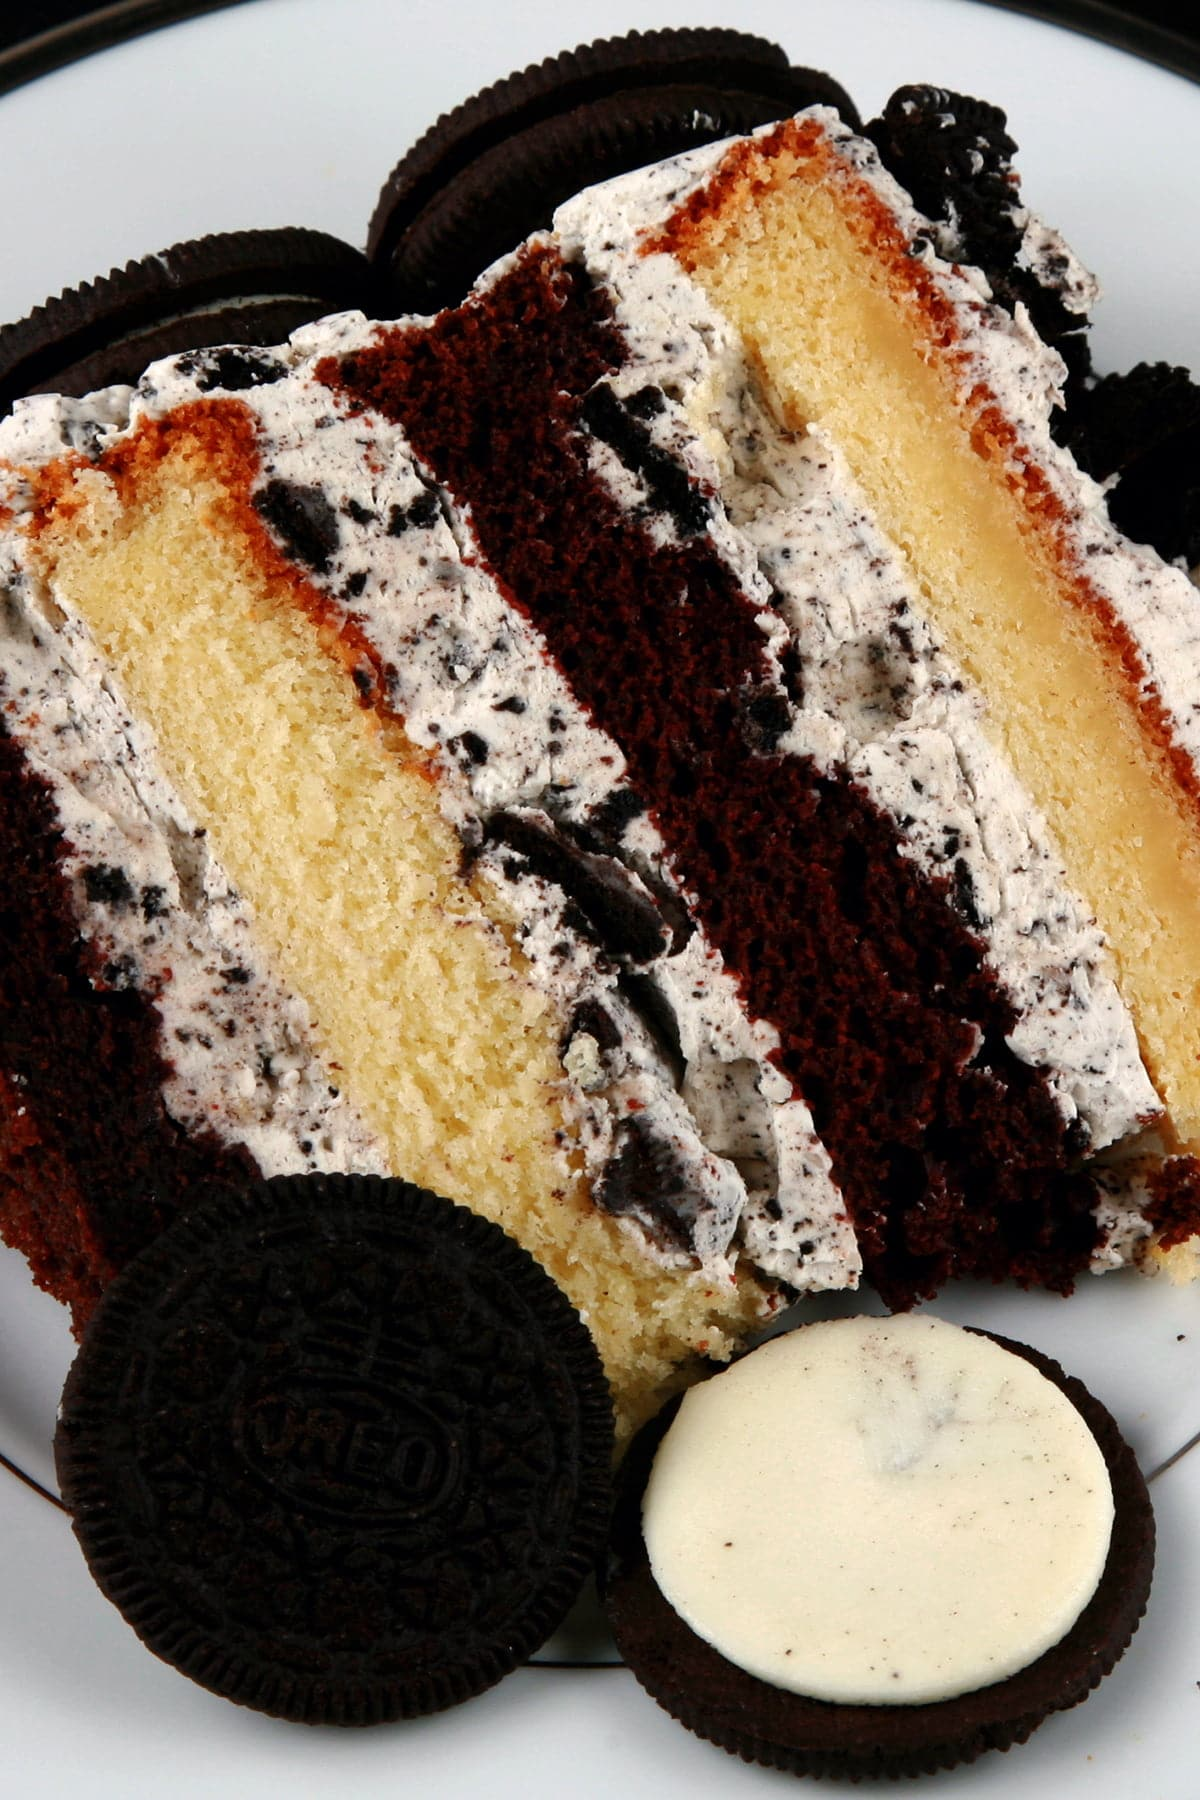 A slice of Cookies N'Cream Cake: A layered chocolate and vanille torte, filled with vanilla Buttercream and Oreo cookies. The cake slice is on a white place, against a black background.